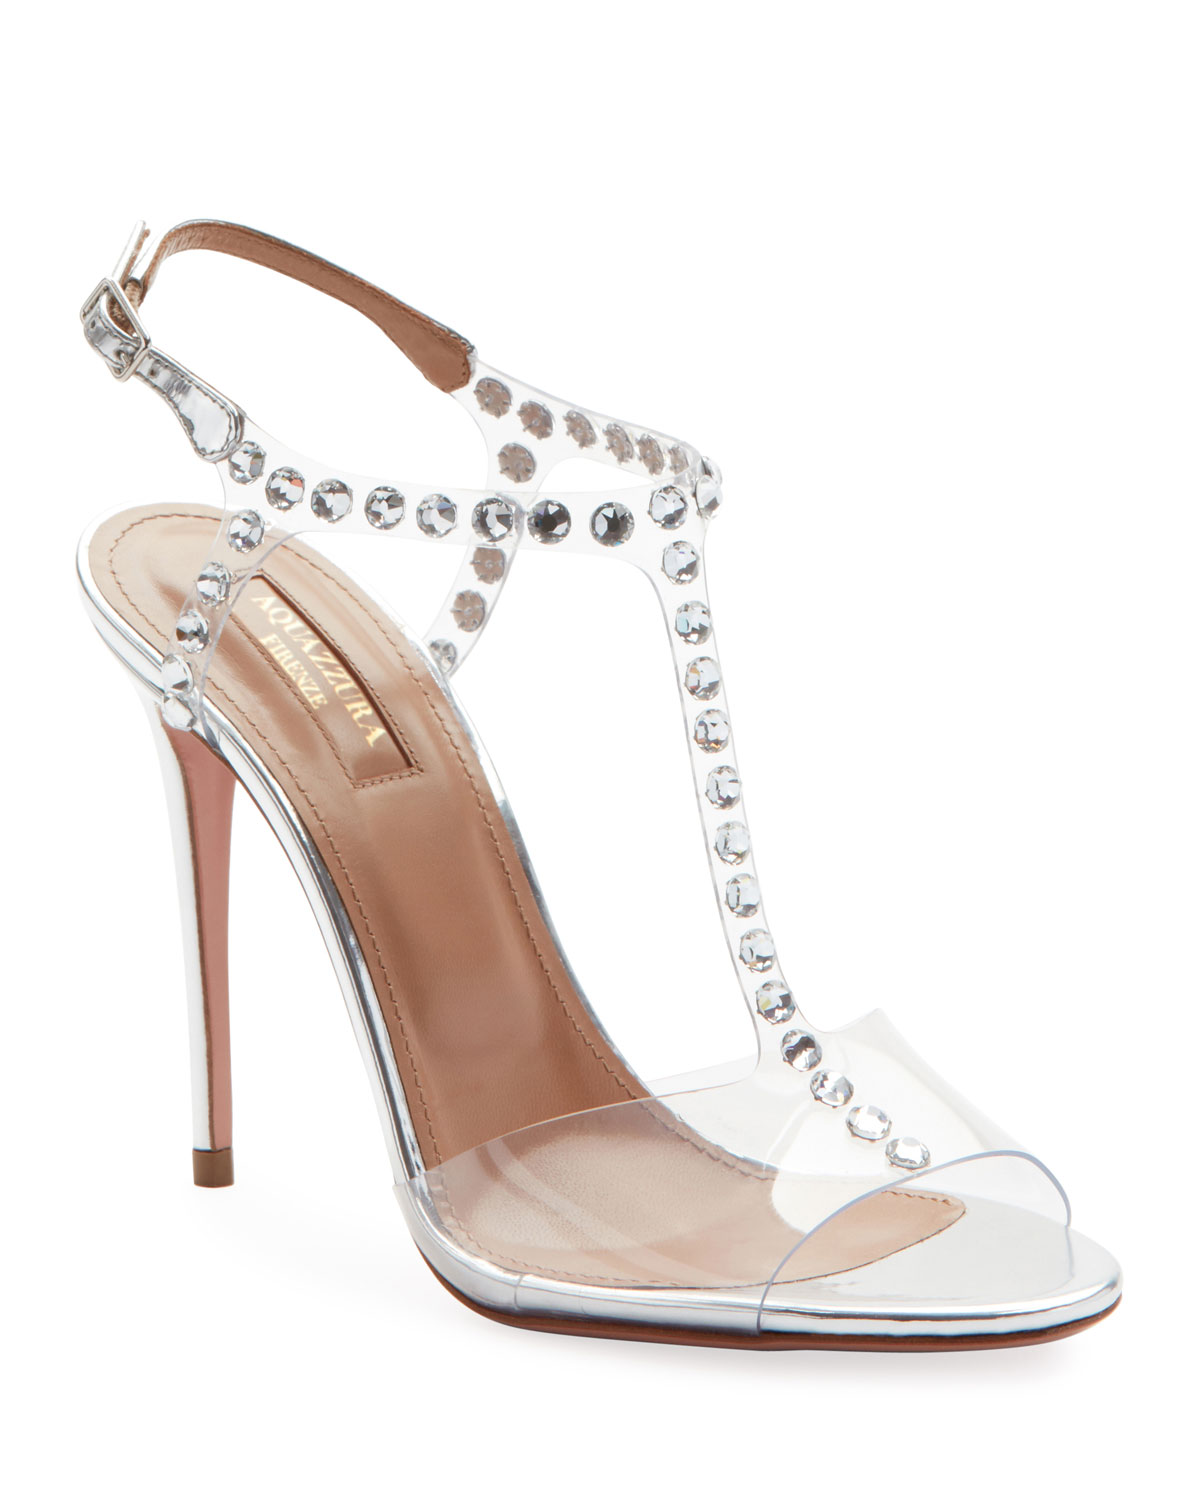 Shine Embellished Pvc Sandals by Aquazzura